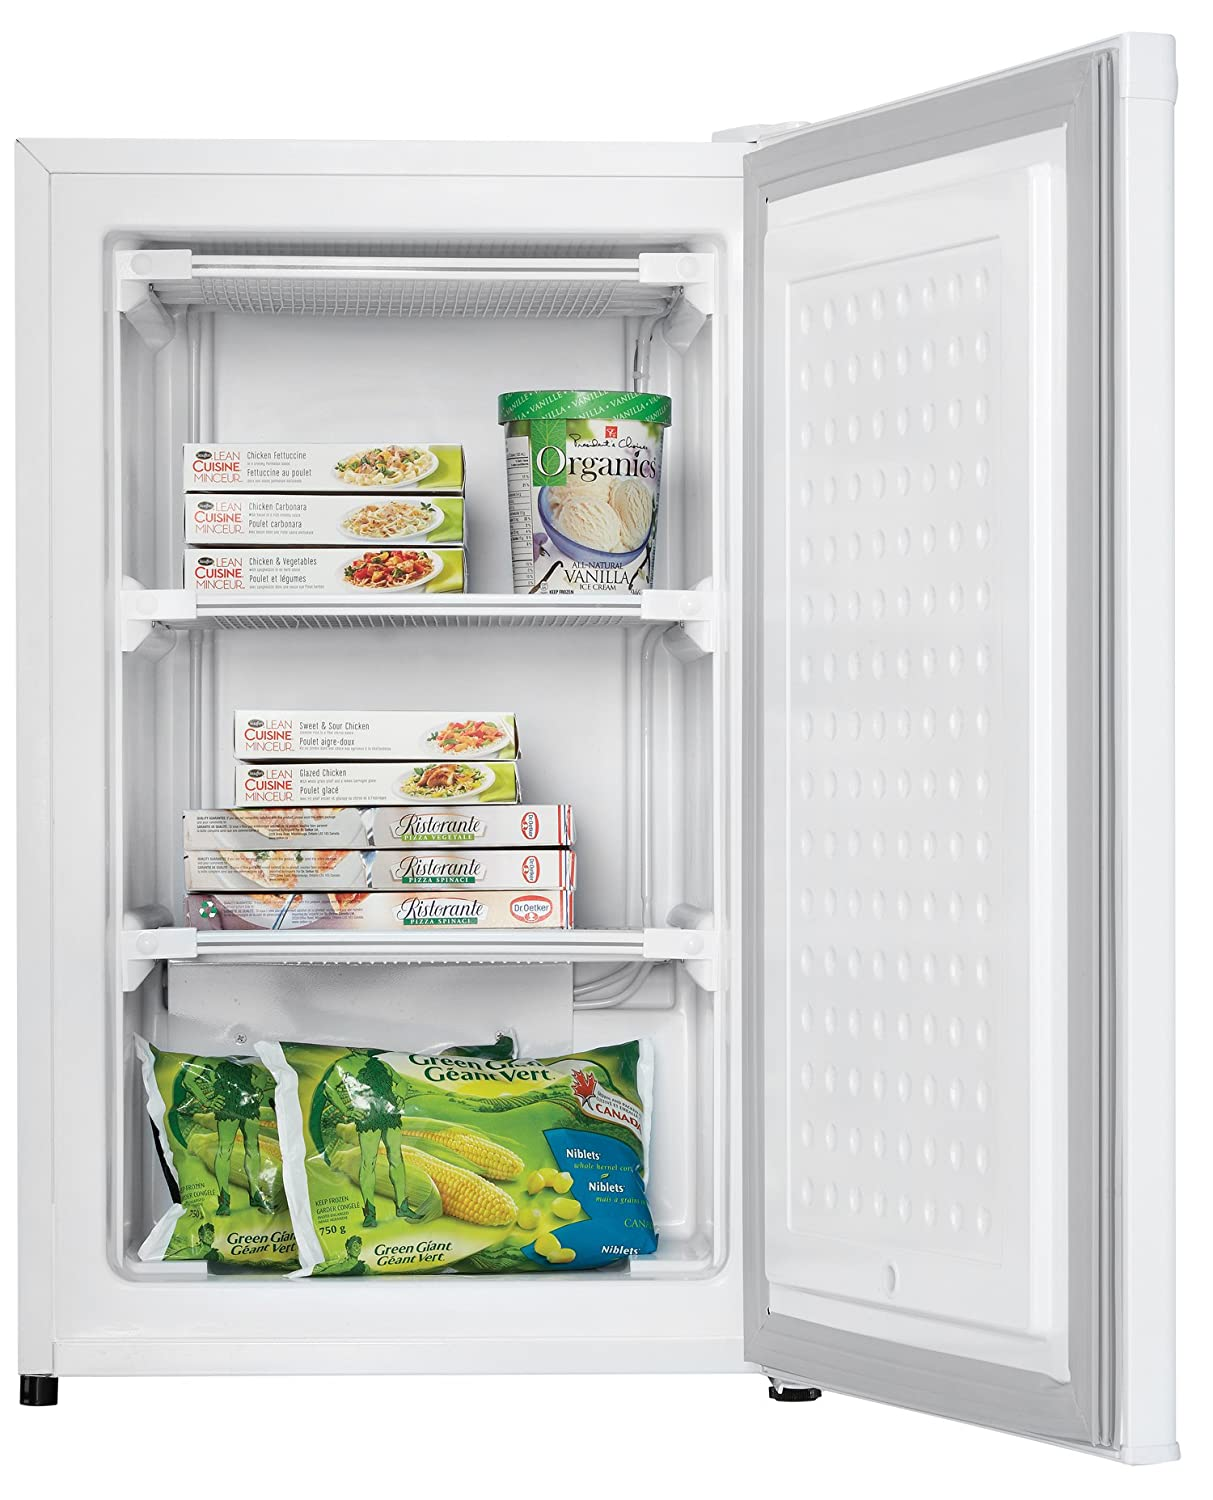 amazoncom danby 32 cubic feet upright freezer white appliances